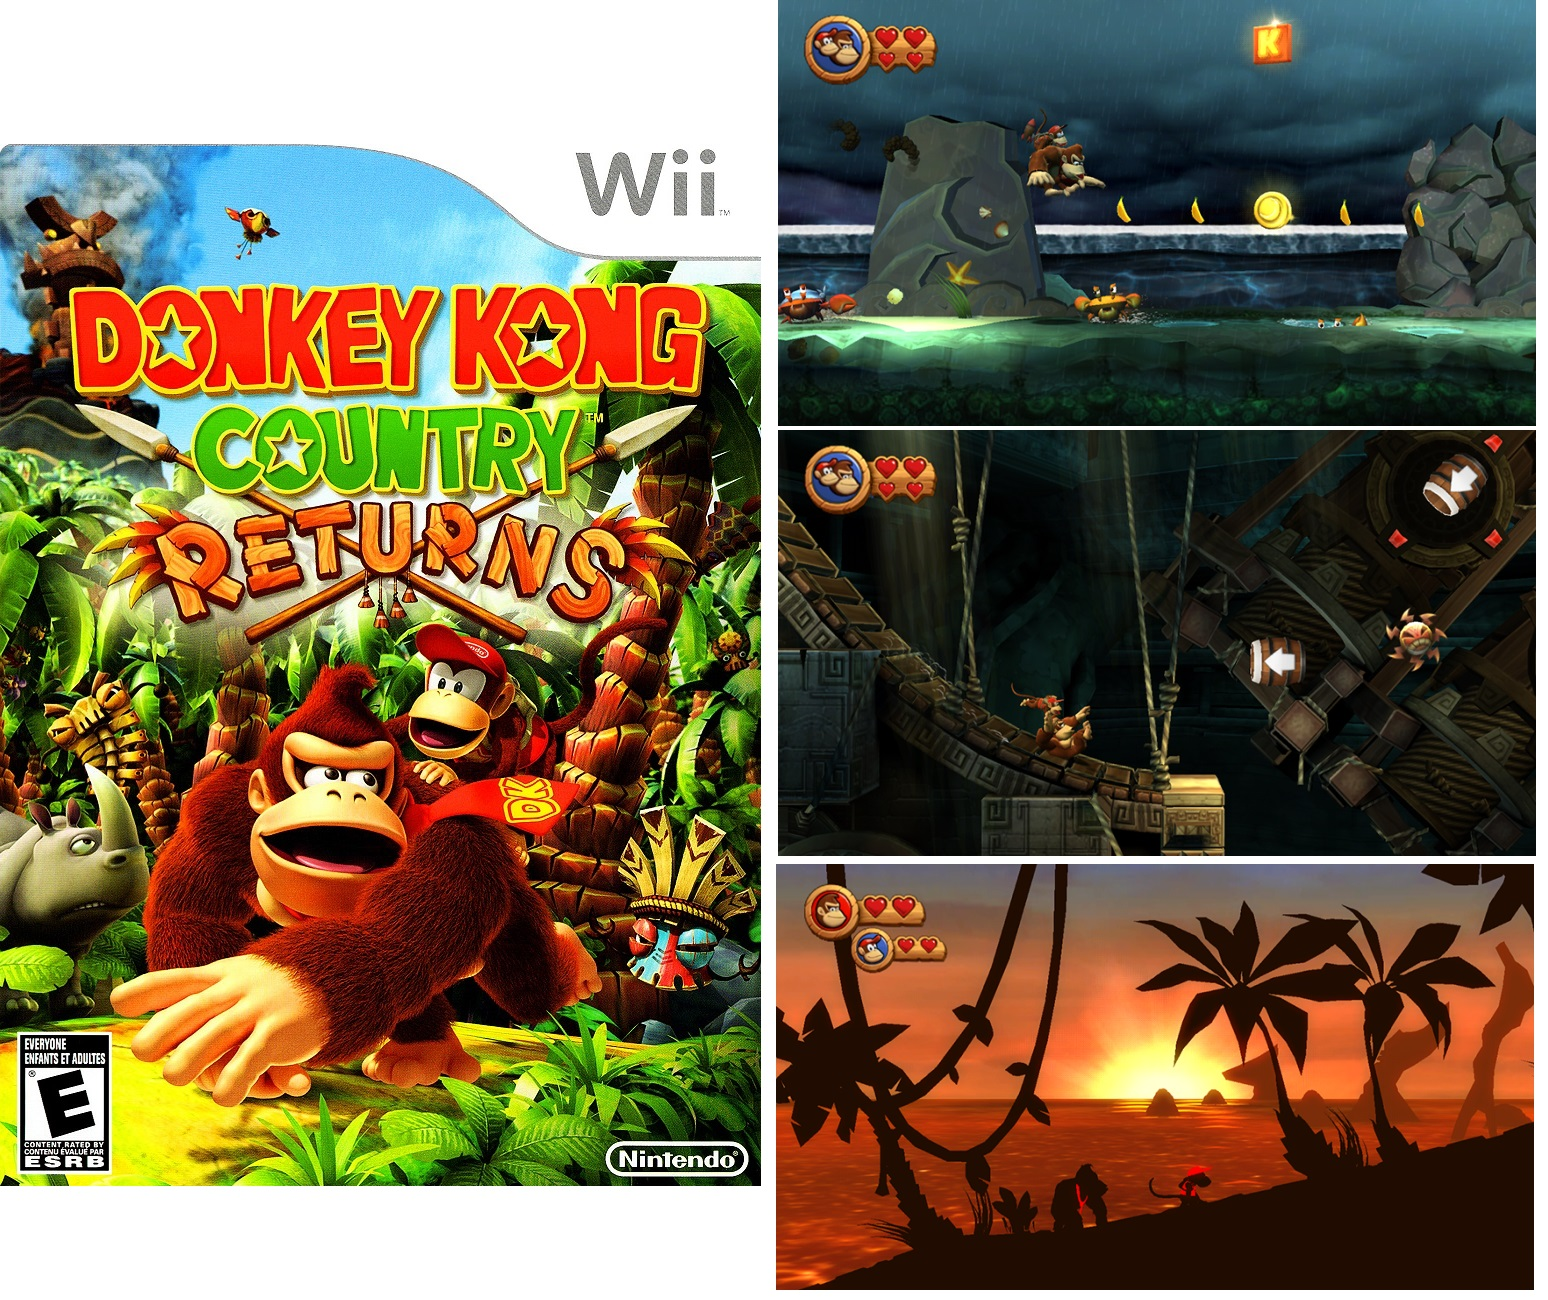 Donkey Kong Country Returns Wii 2010 (2)